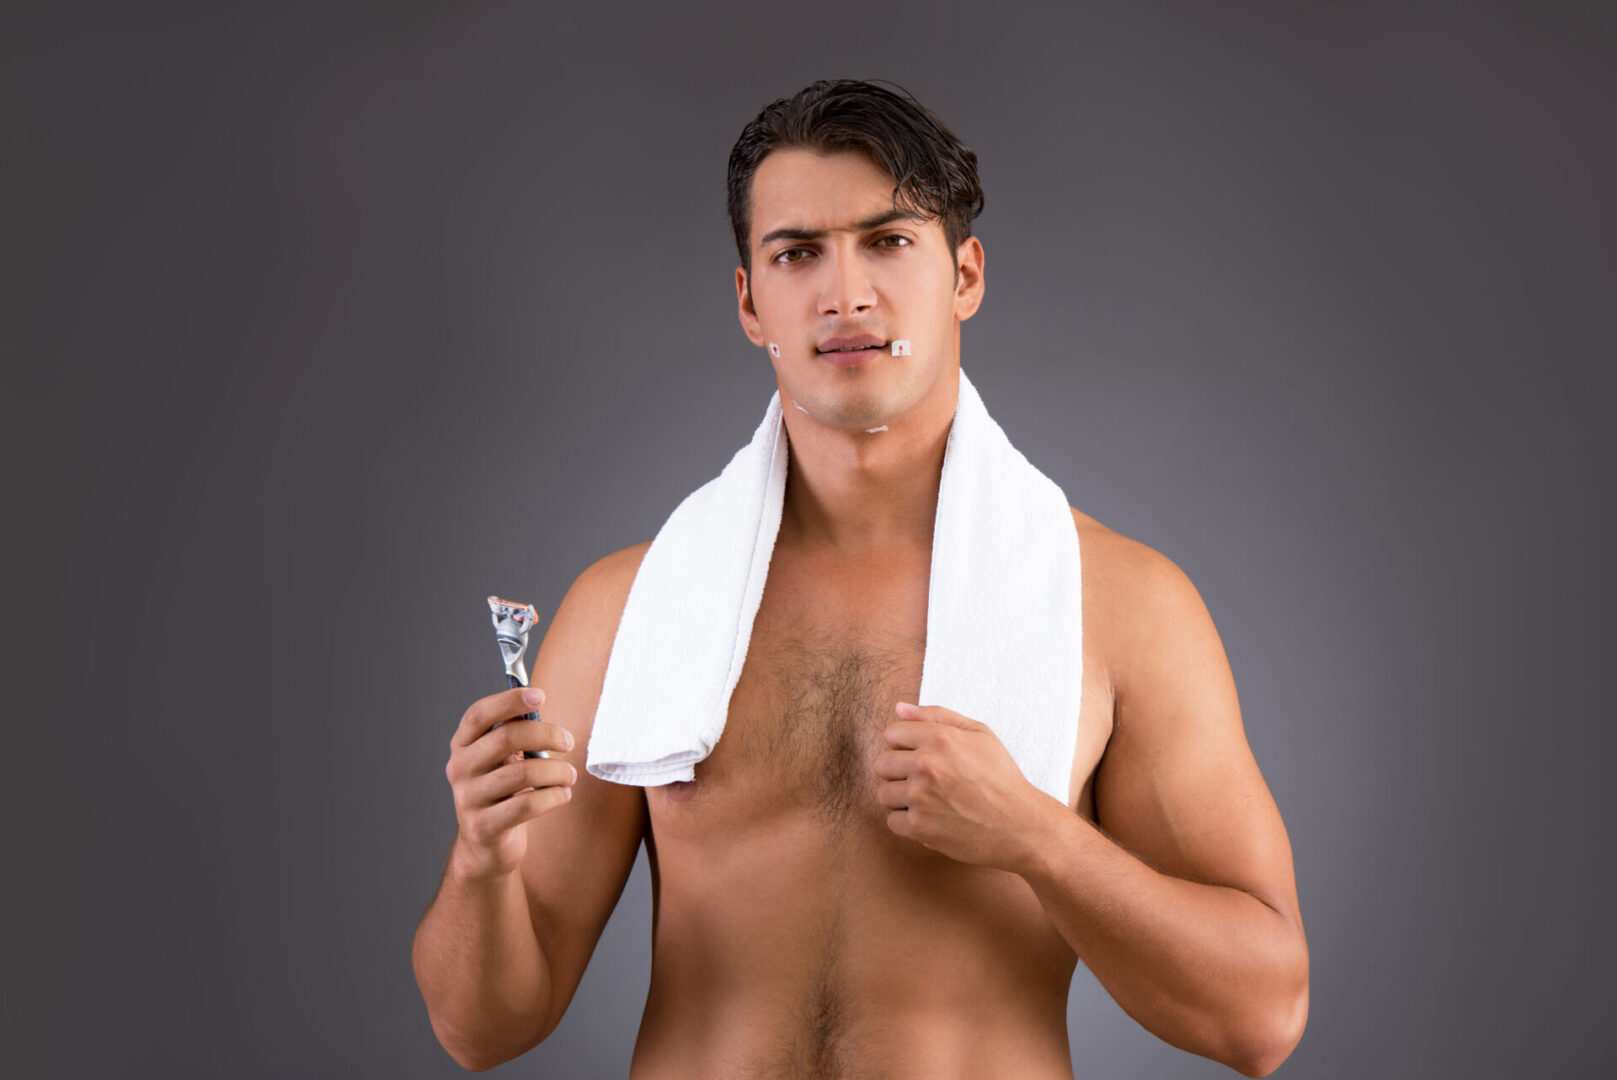 Handsome man shaving against dark background